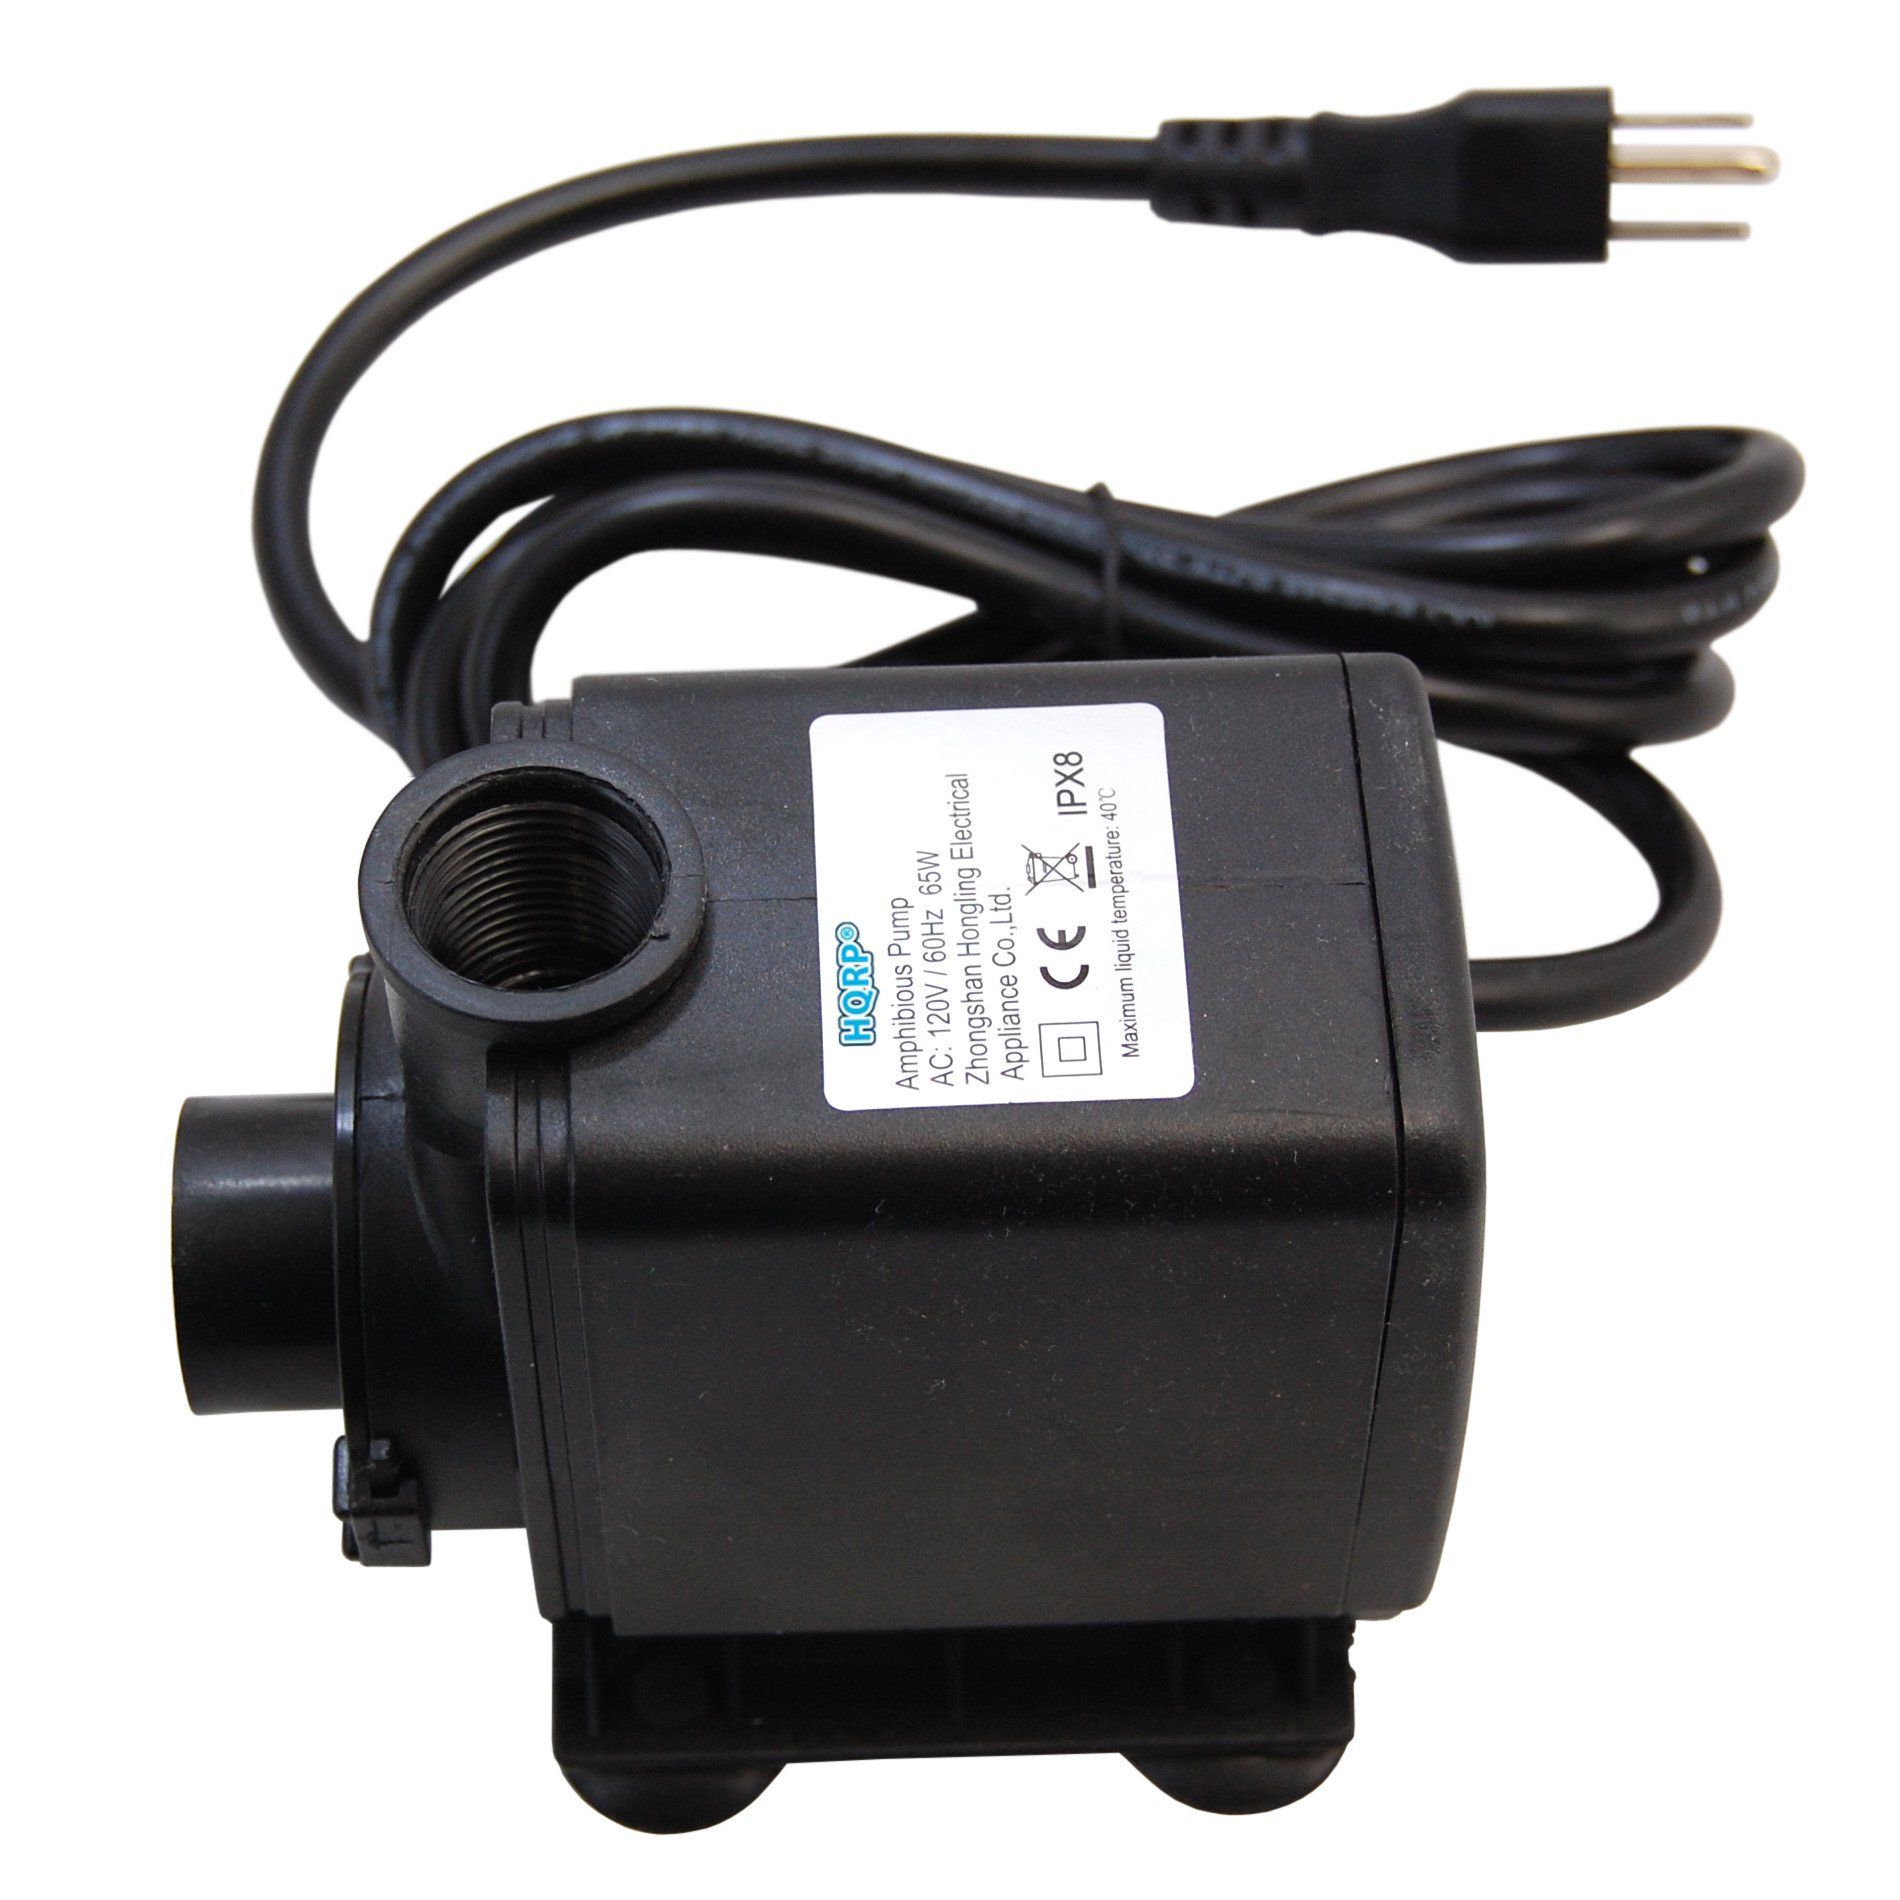 HQRP High Power 3500L/H 925GPH 65W Submersible Water Pump for Aquarium/Fountains / Pond/Statuary / Tanks/Spout and Hydroponic Systems plus UV Meter